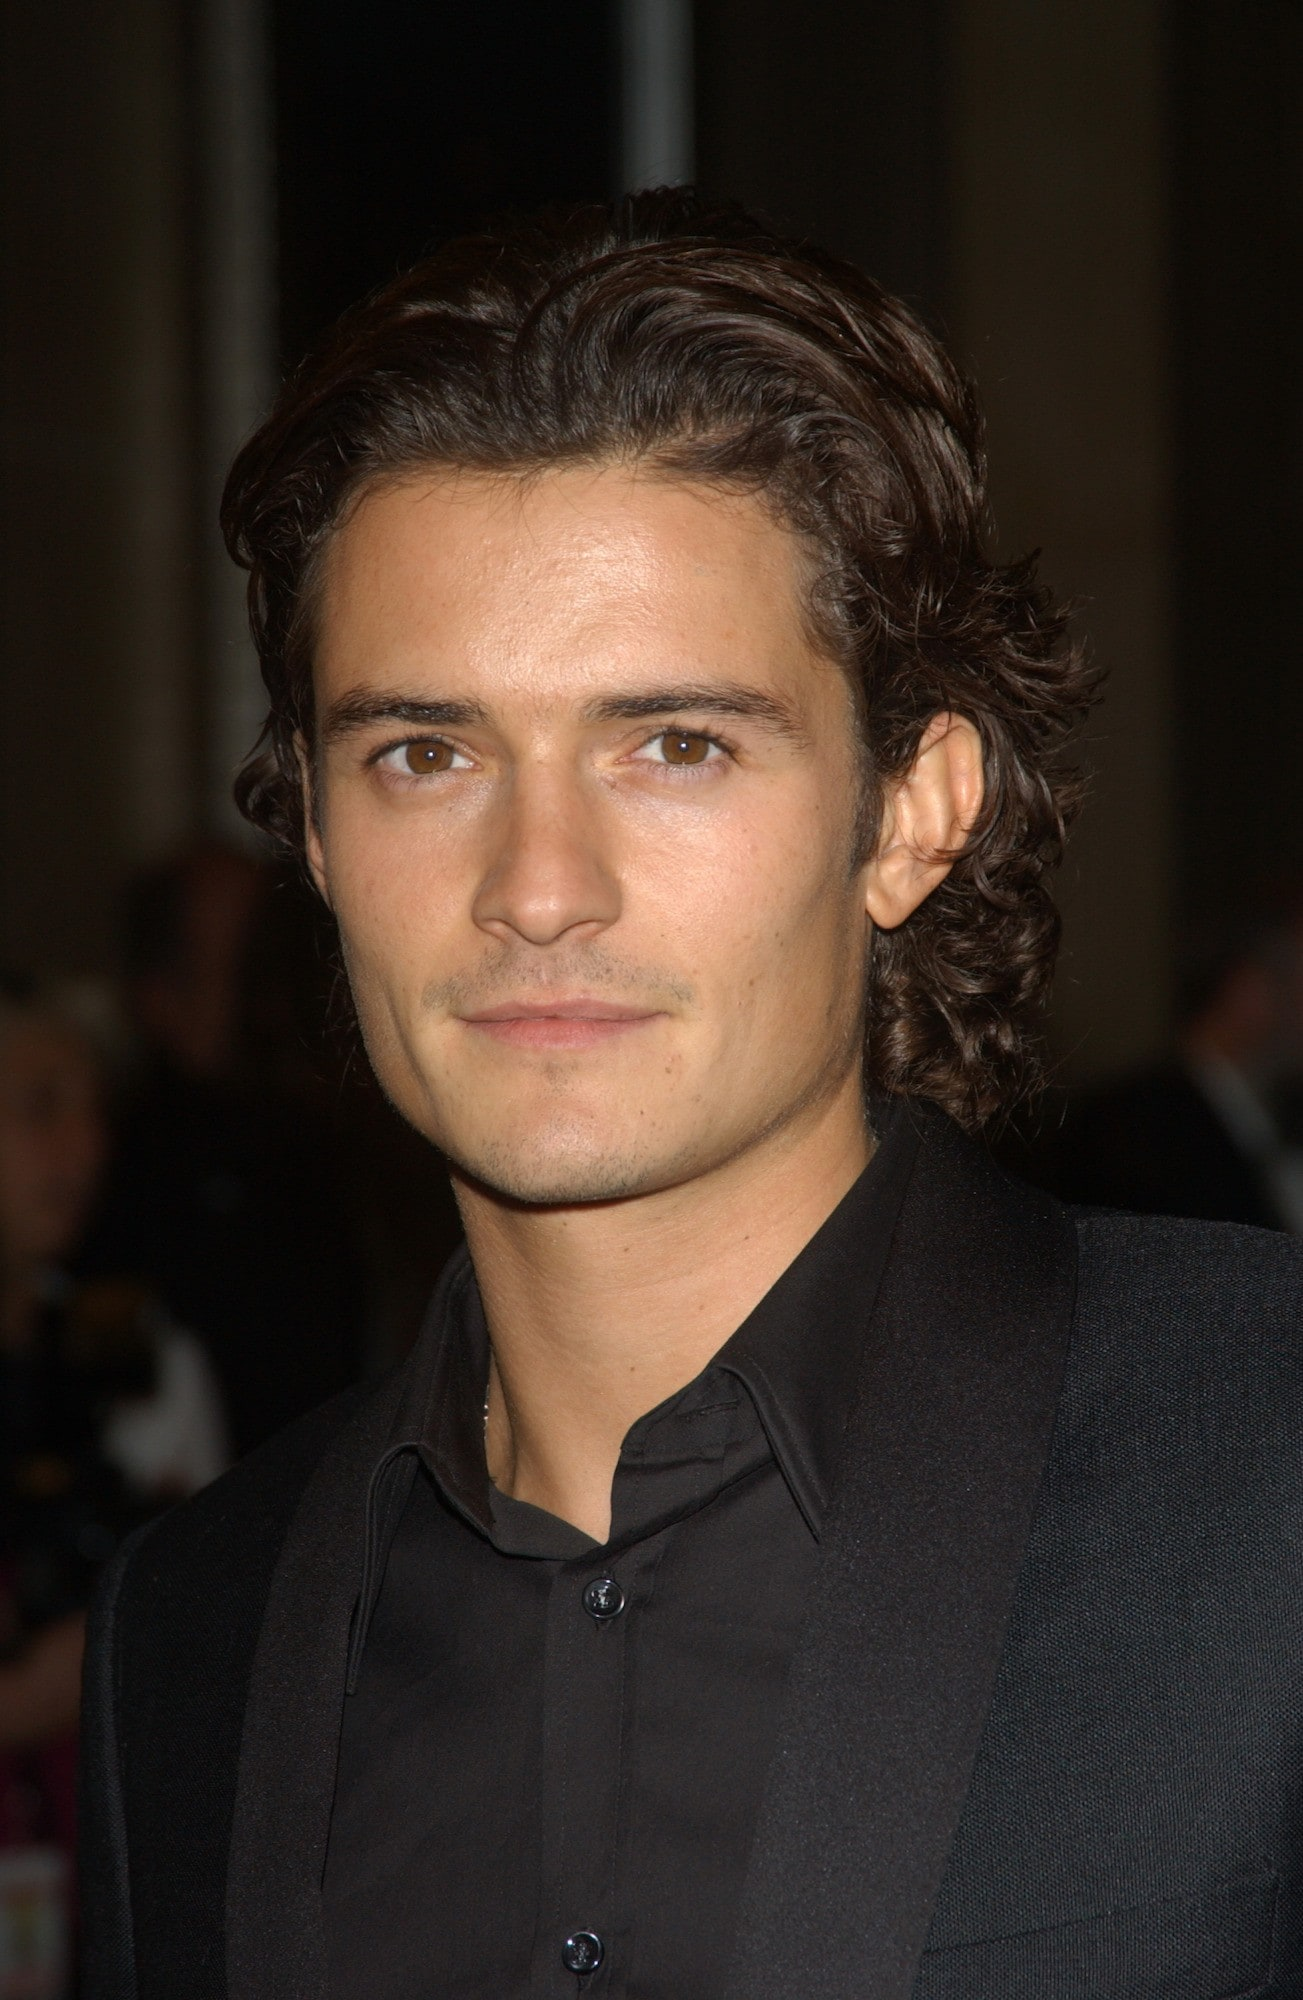 Vintage hairstyle Orlando Bloom medium haircut curly.